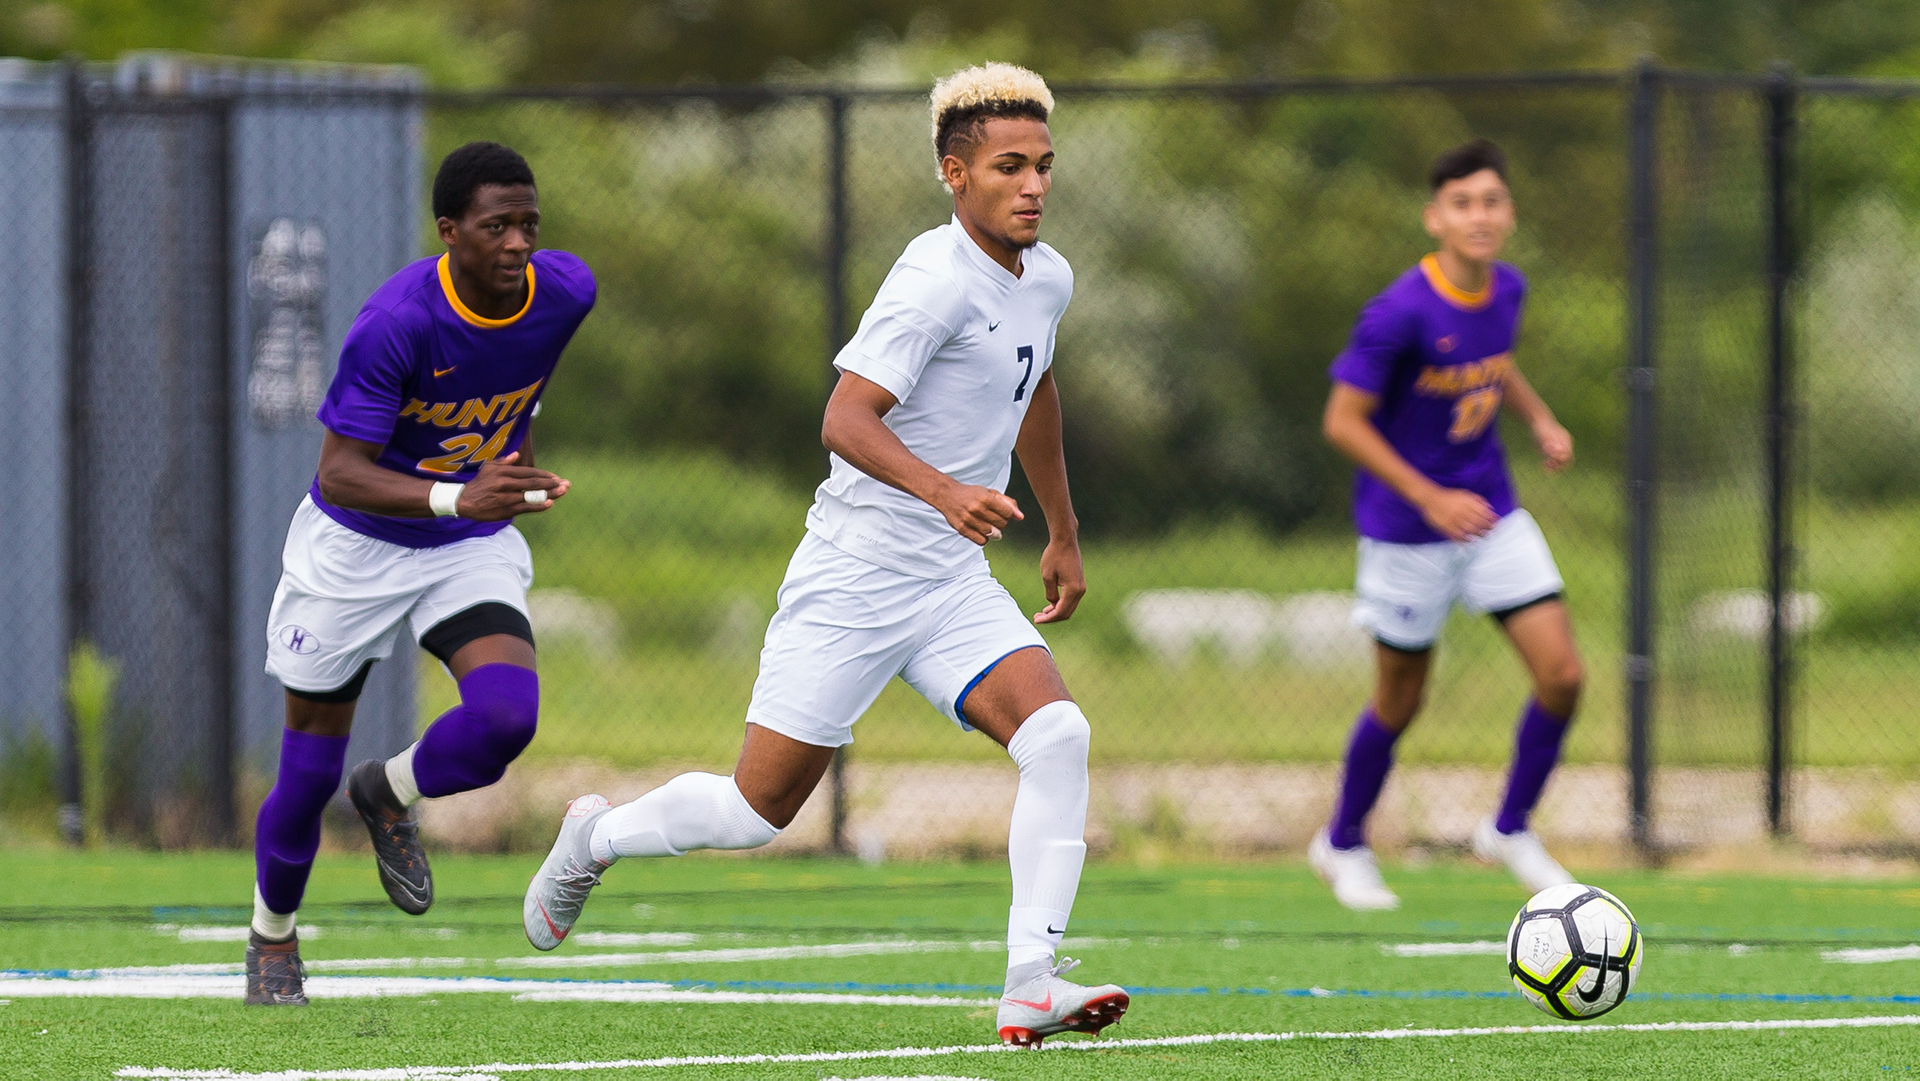 Baruch Narrowly Edges Men's Soccer in Hard-Fought Battle